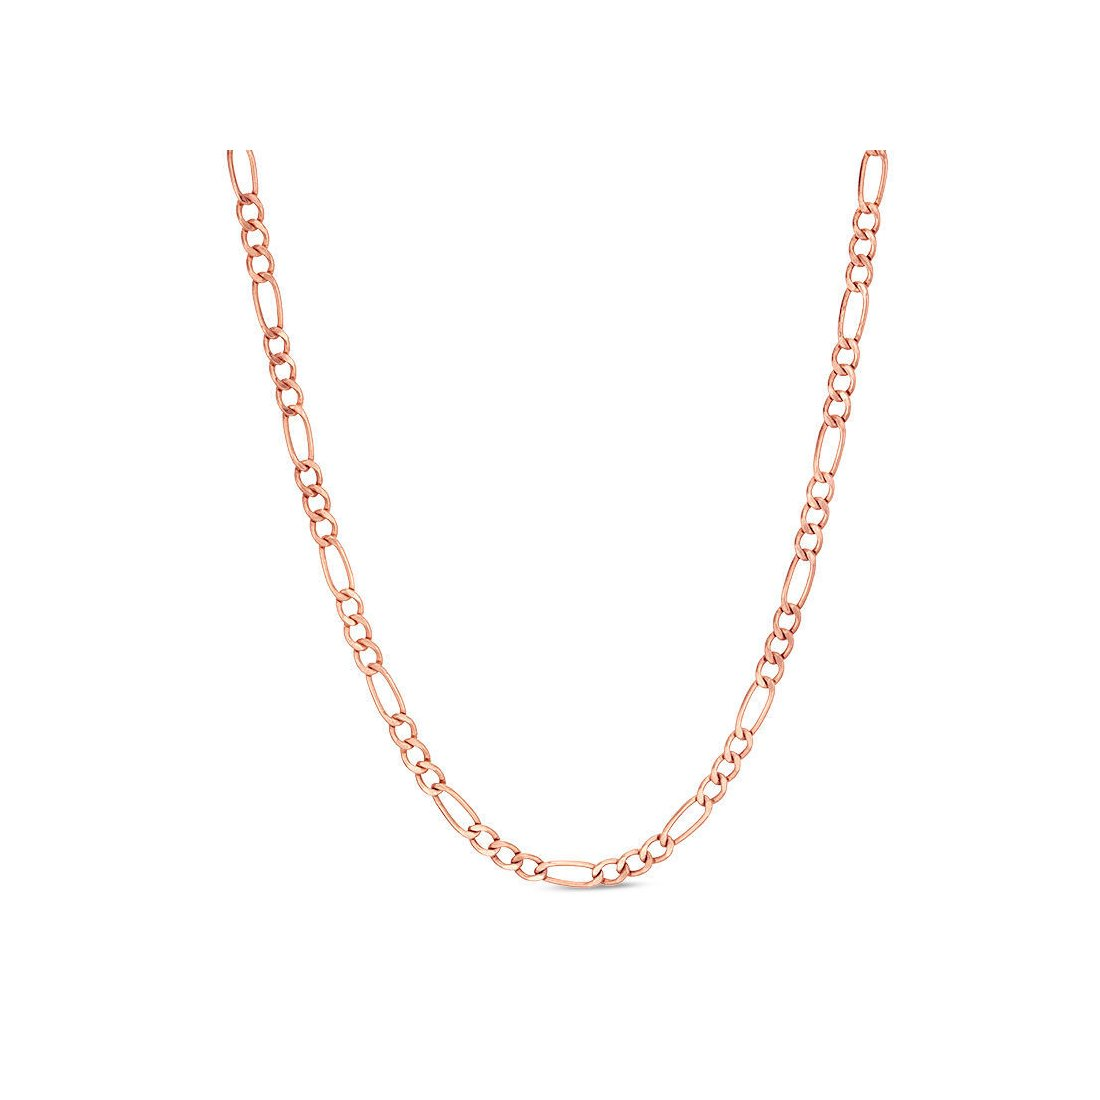 "1.5MM 040 Rose Tone Figaro Chain .925 Sterling Silver Length ""16-22"" Inches"